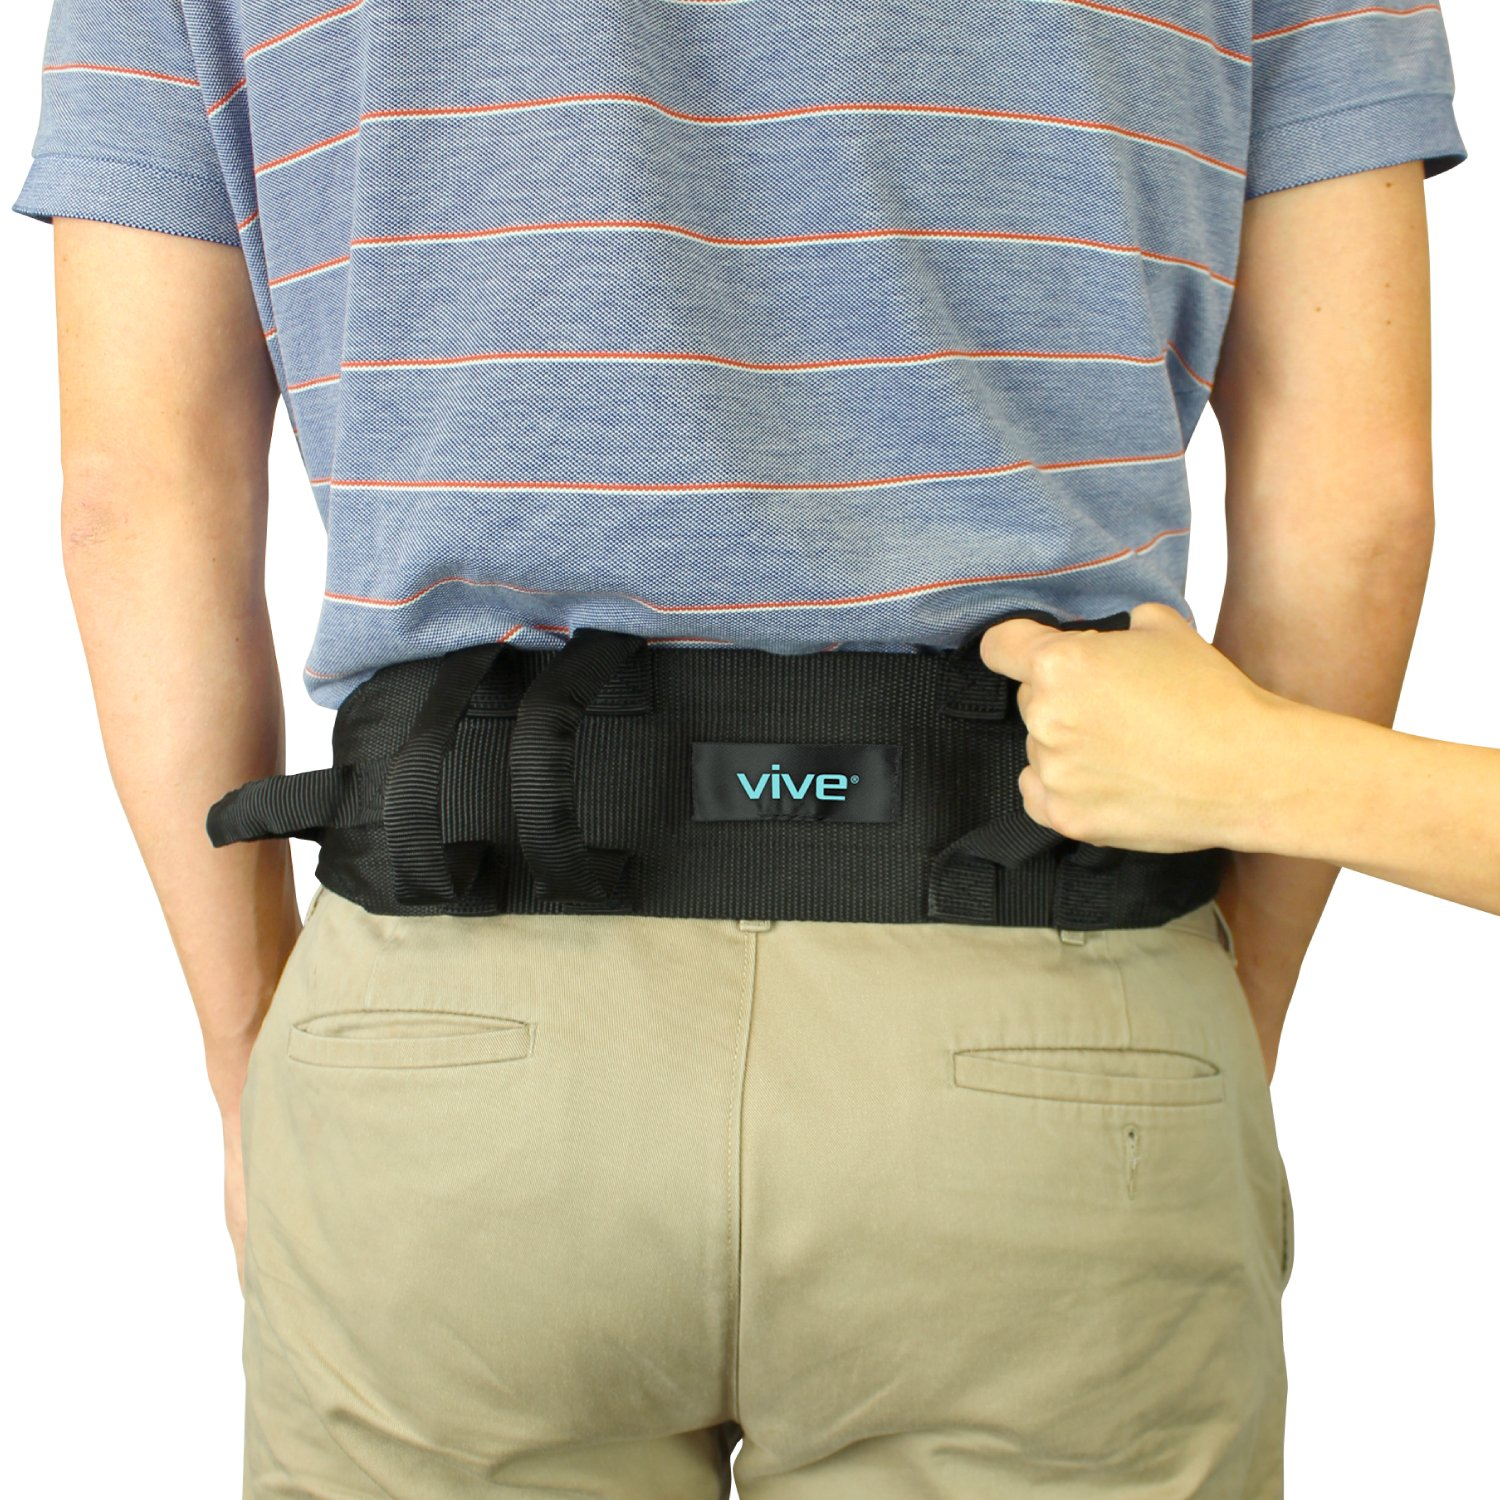 Transfer Belt With Handles by Vive - Medical Nursing Safety Gait Assist Device - Bariatrics, Pediatric, Elderly, Occupational & Physical Therapy - Long Gate Strap Quick Release Metal Buckle - 55 Inch by VIVE